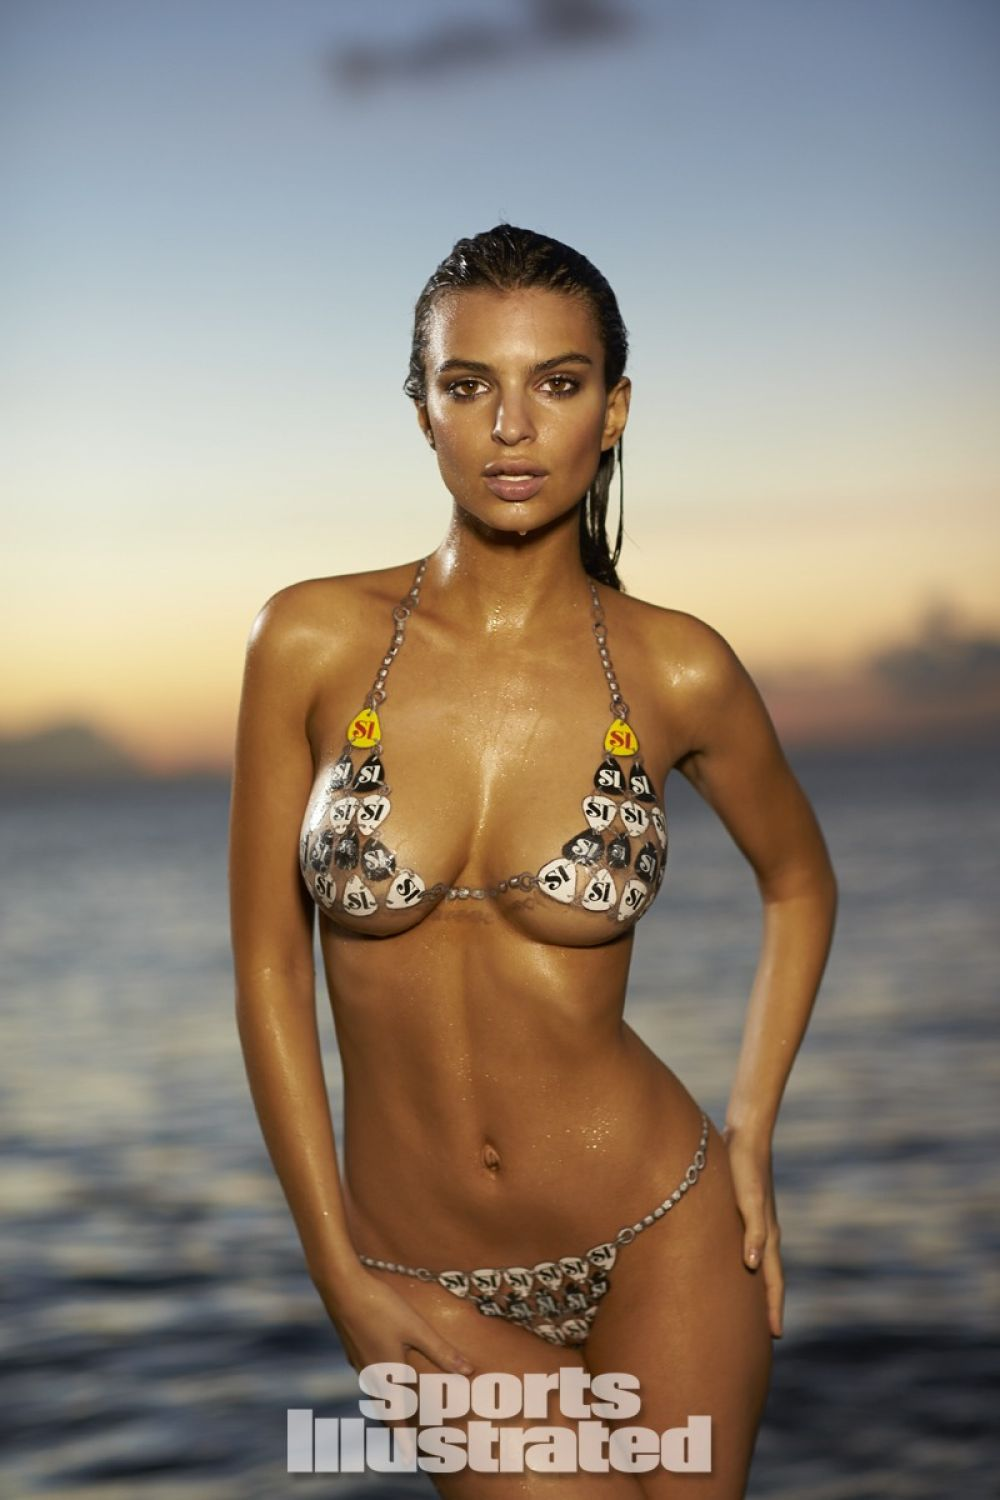 Bathing suit on models painted